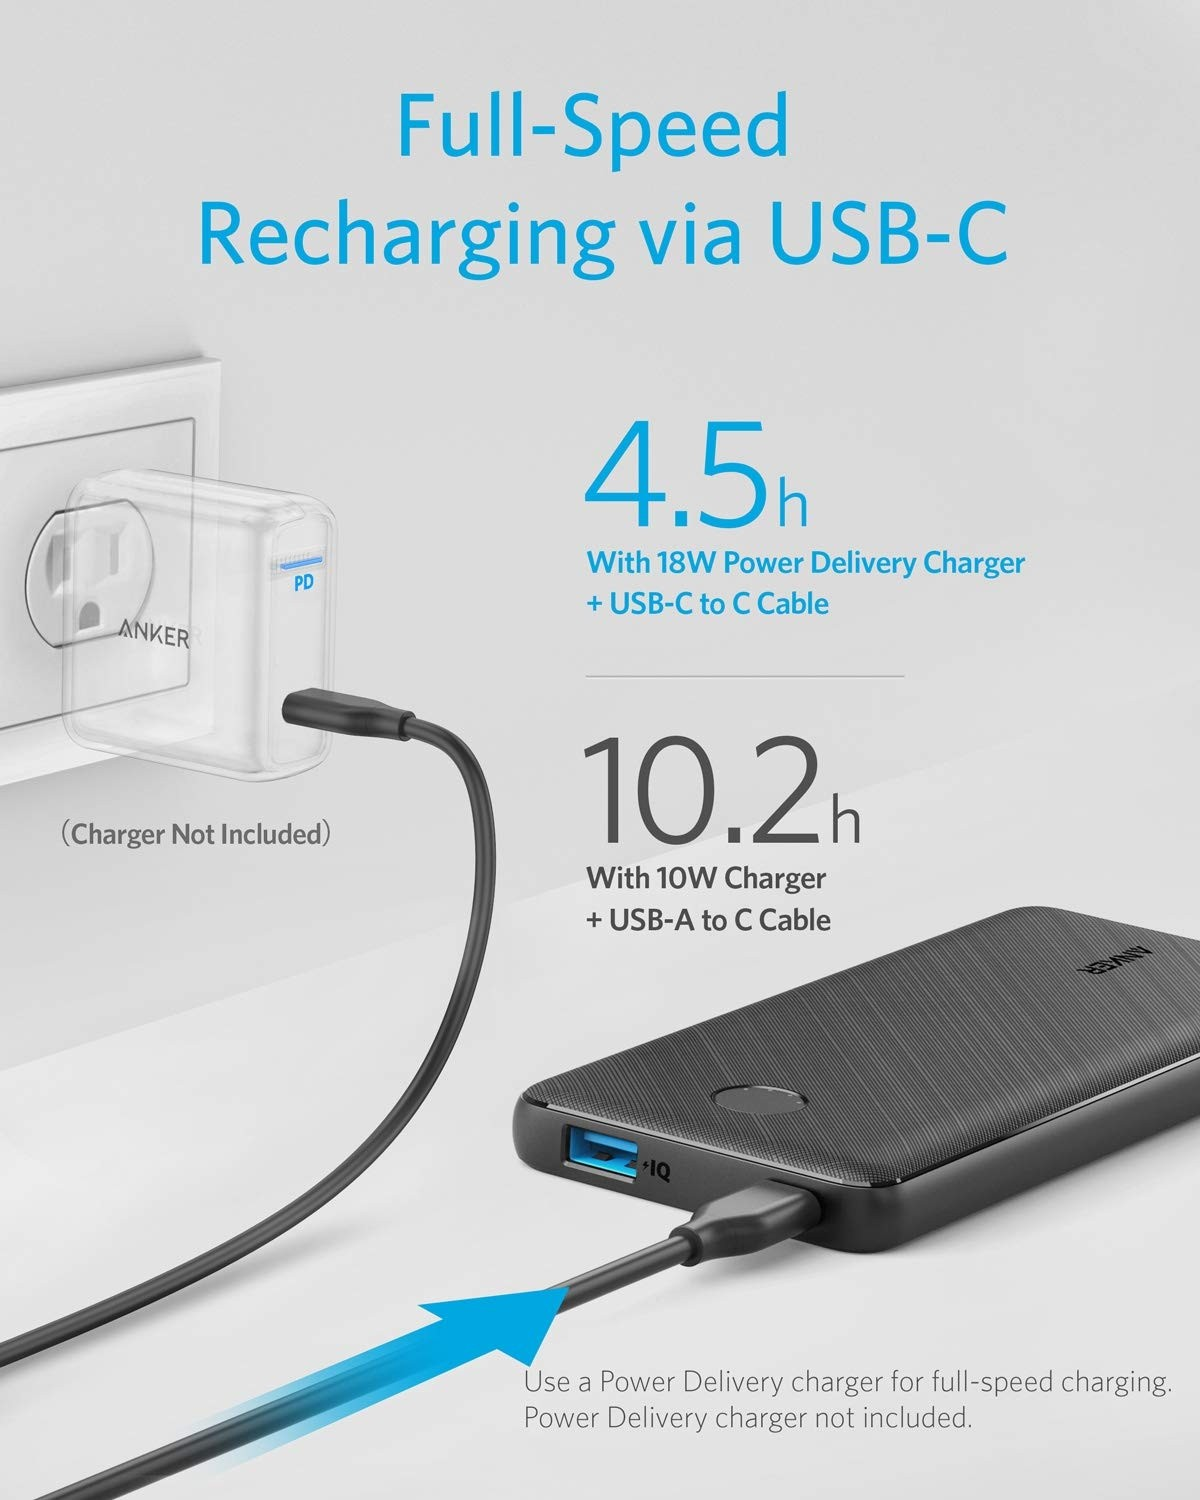 Anker PowerCore Slim 10000mAh Portable Charger USB-C Power Delivery (18W) - Black, A1231011